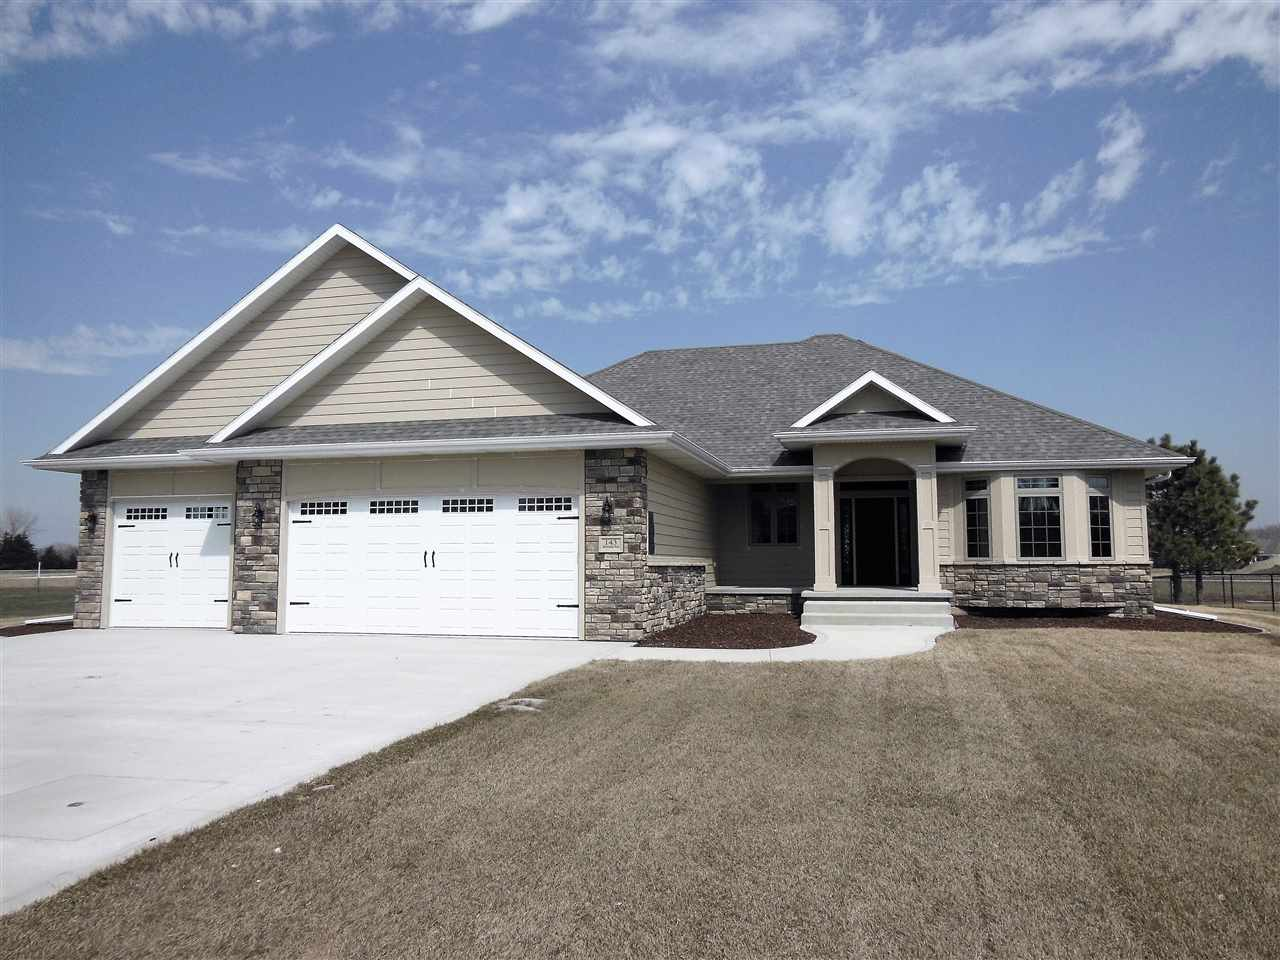 Property for sale at 143 Rottunda Way, South Sioux City,  NE 68776